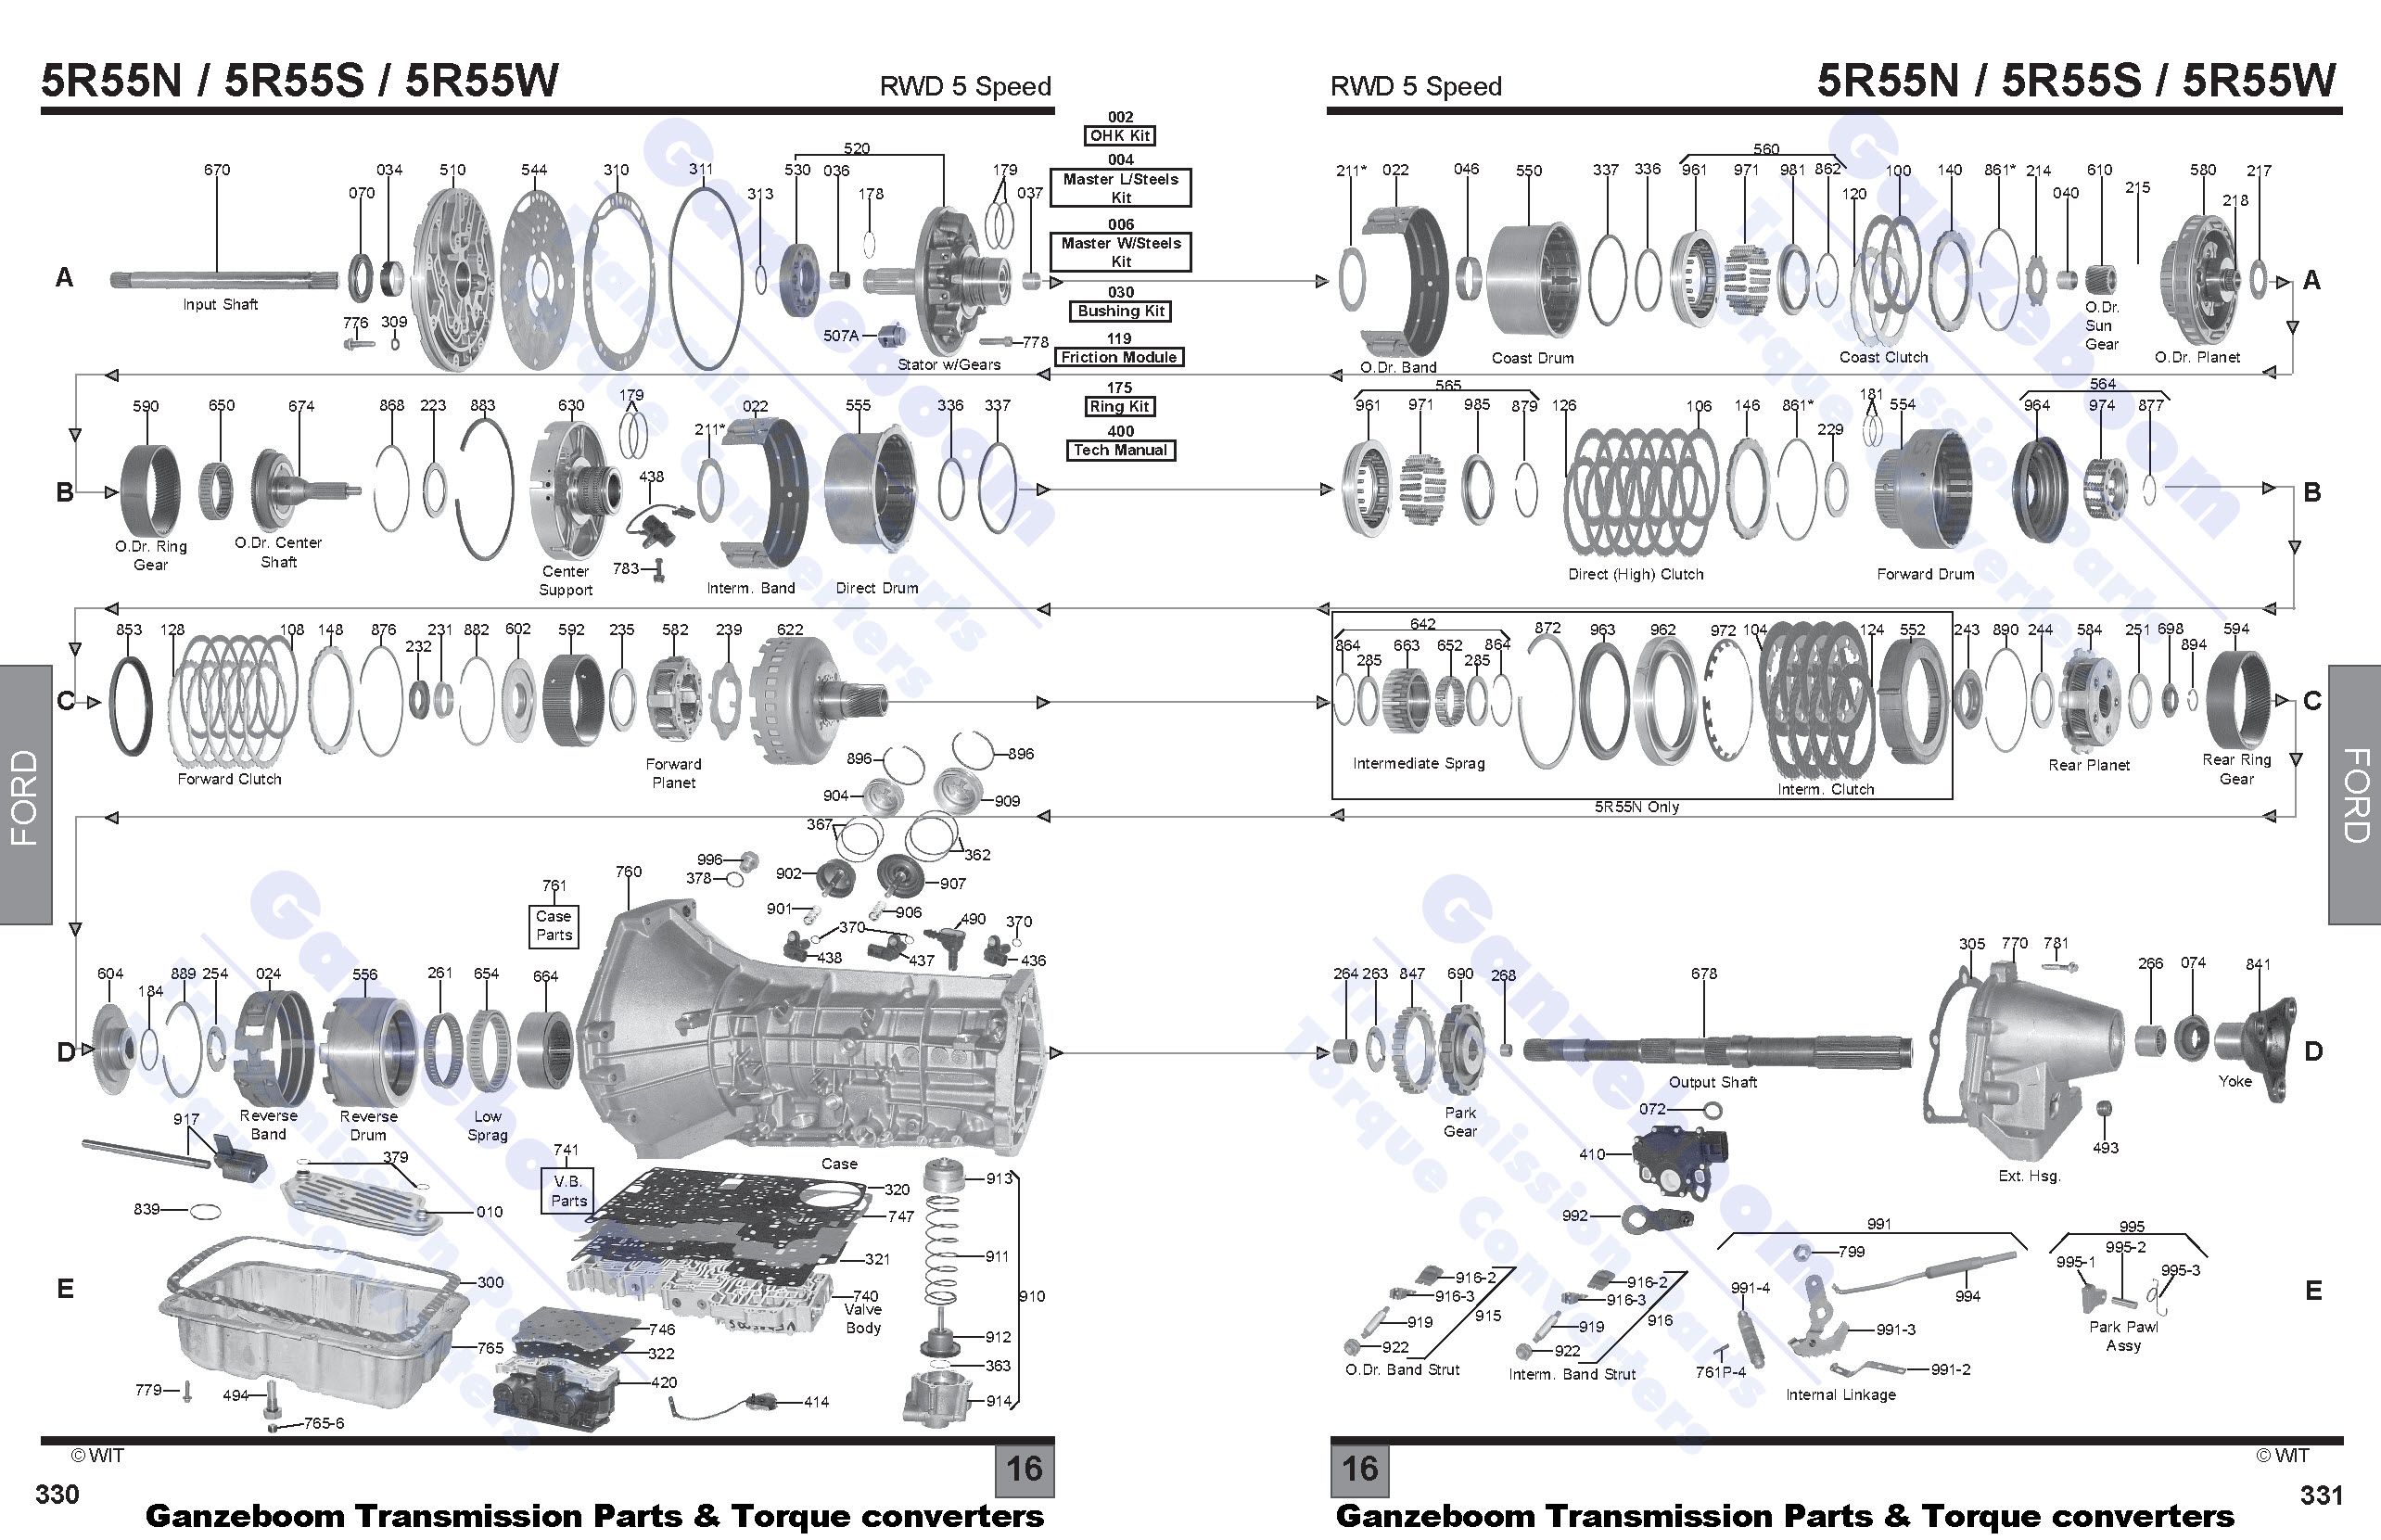 5r55w Diagram - Wiring Diagram Page